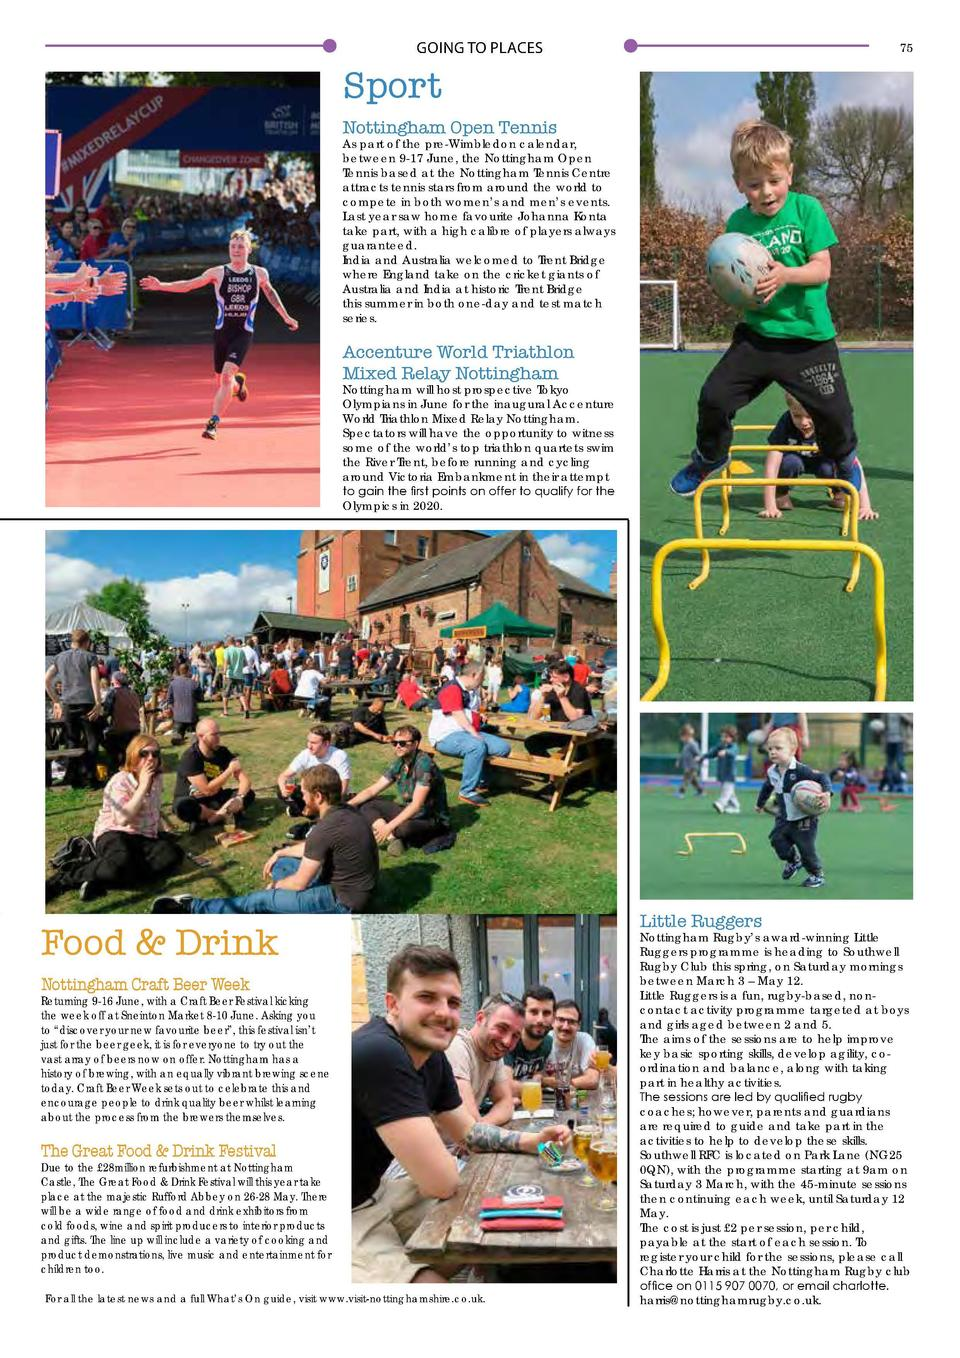 GOING TO PLACES  Event Highlights  74  GOING TO PLACES  75  Sport Nottingham Open Tennis  As part of the pre-Wimbledon cal...